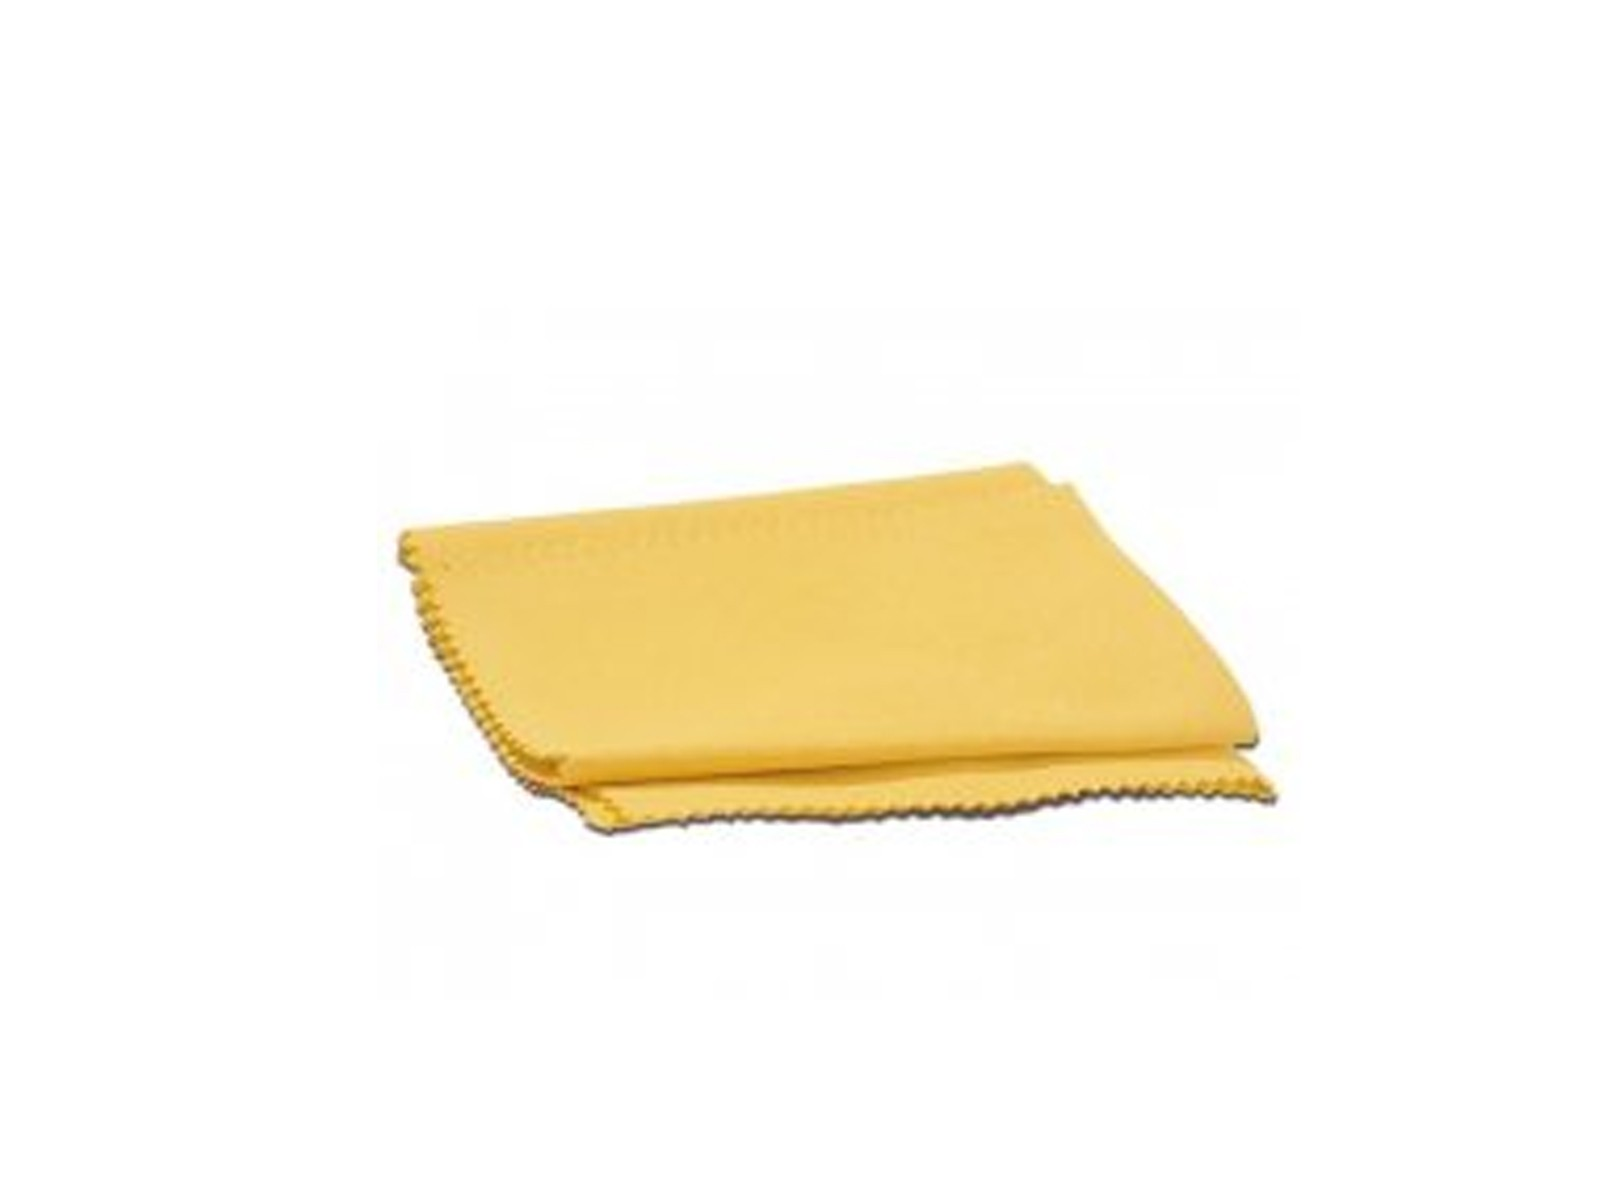 Acryl Cloth - Anti-static Cleaning